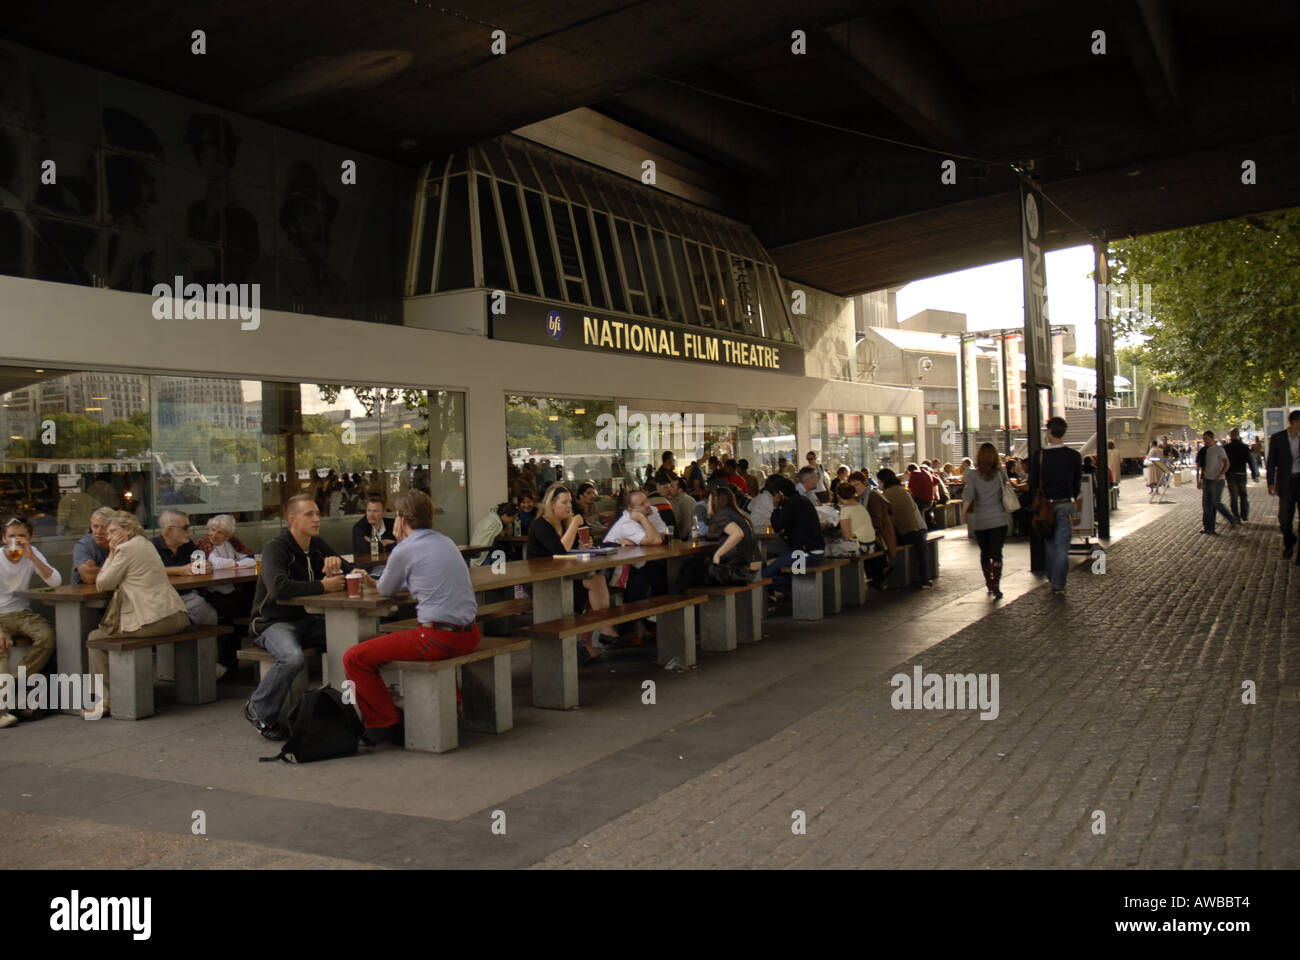 BFI National Film Theatre Southbank, London - Stock Image